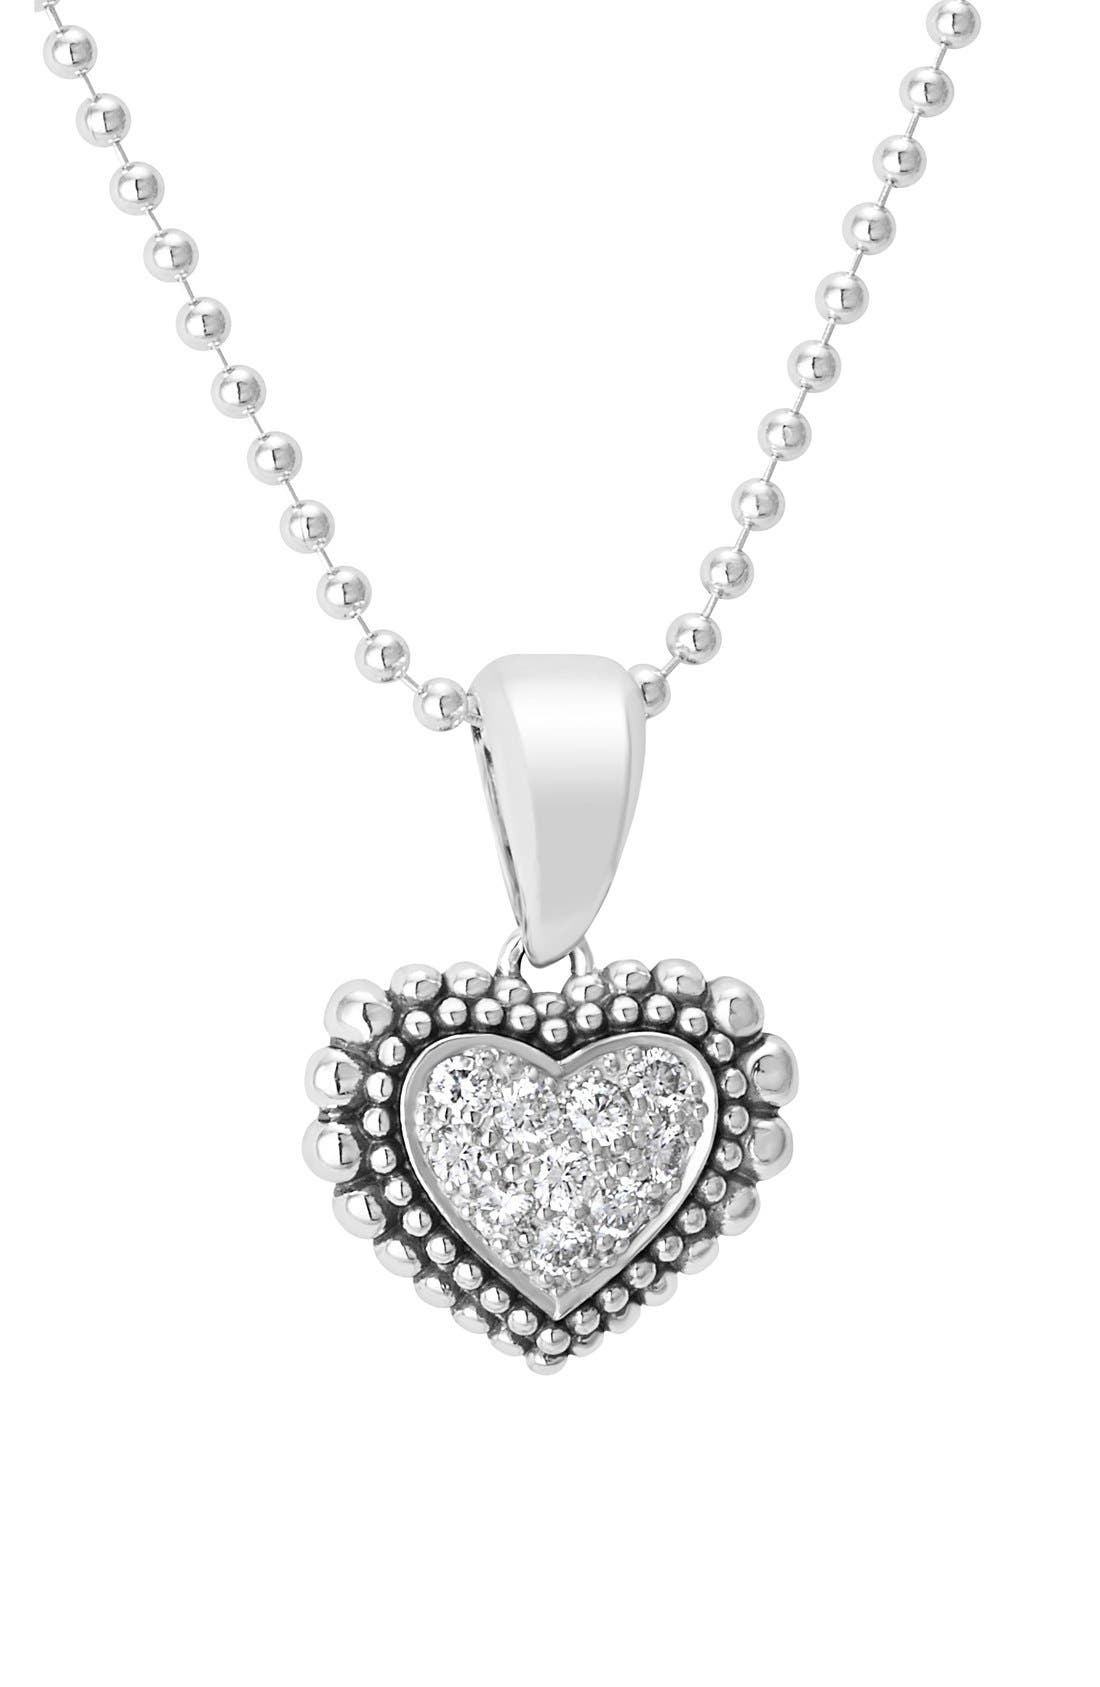 Diamond Heart Pendant Necklace,                             Main thumbnail 1, color,                             040